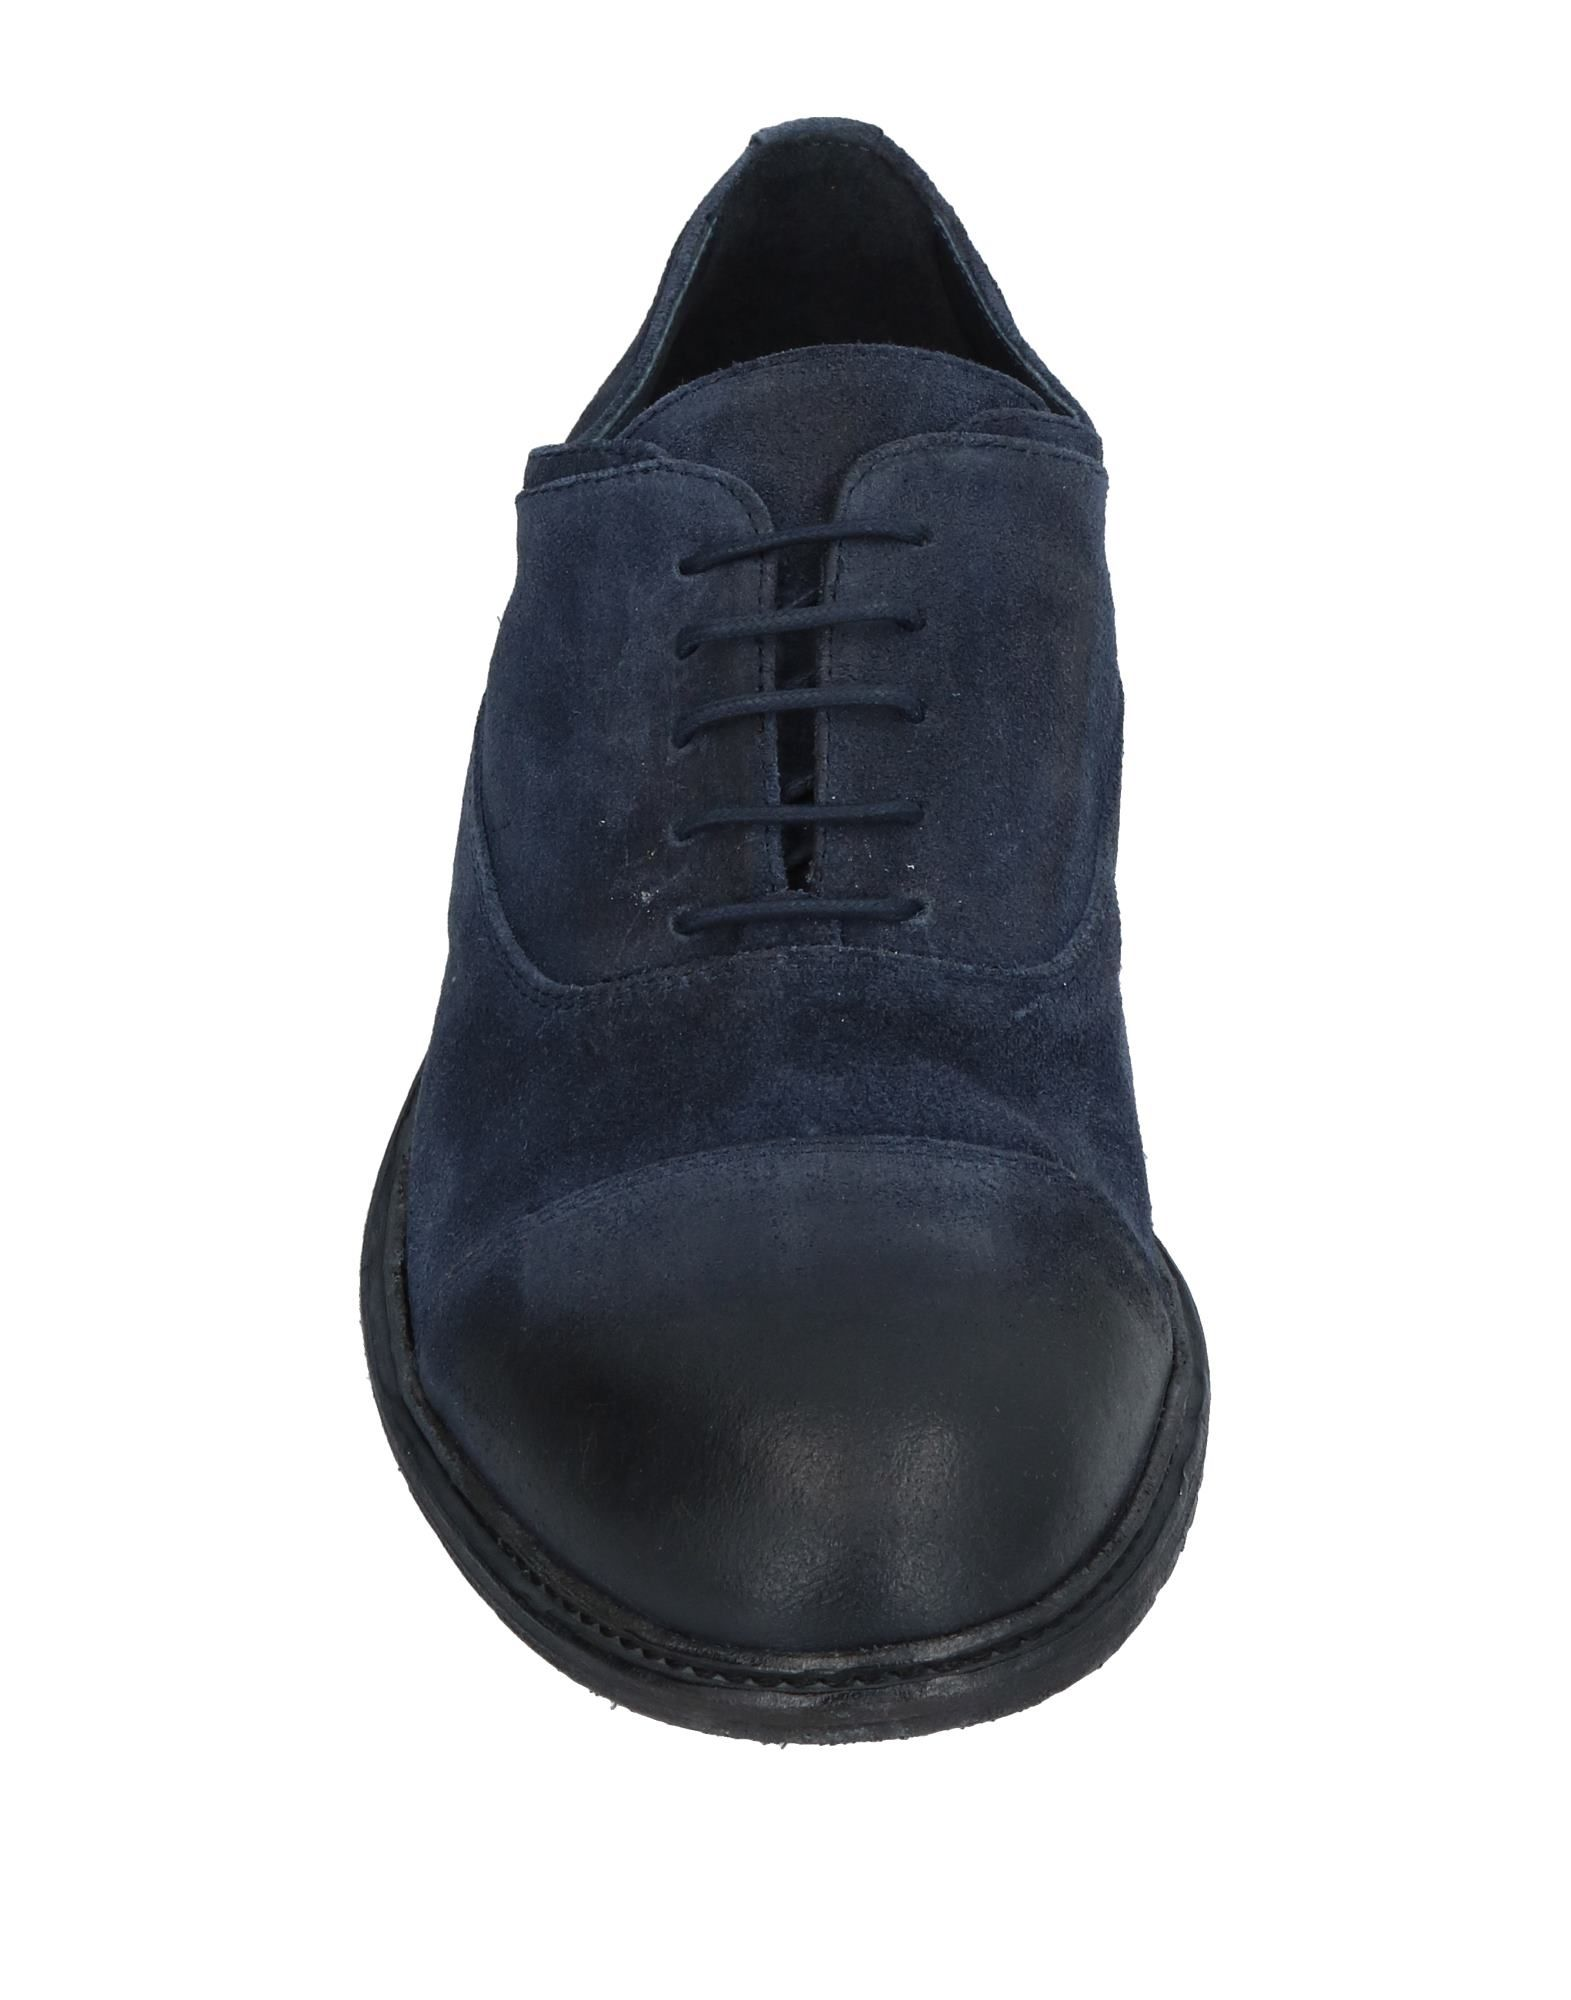 CHAUSSURES - Chaussures à lacetsHundred 100 UEBz474EY